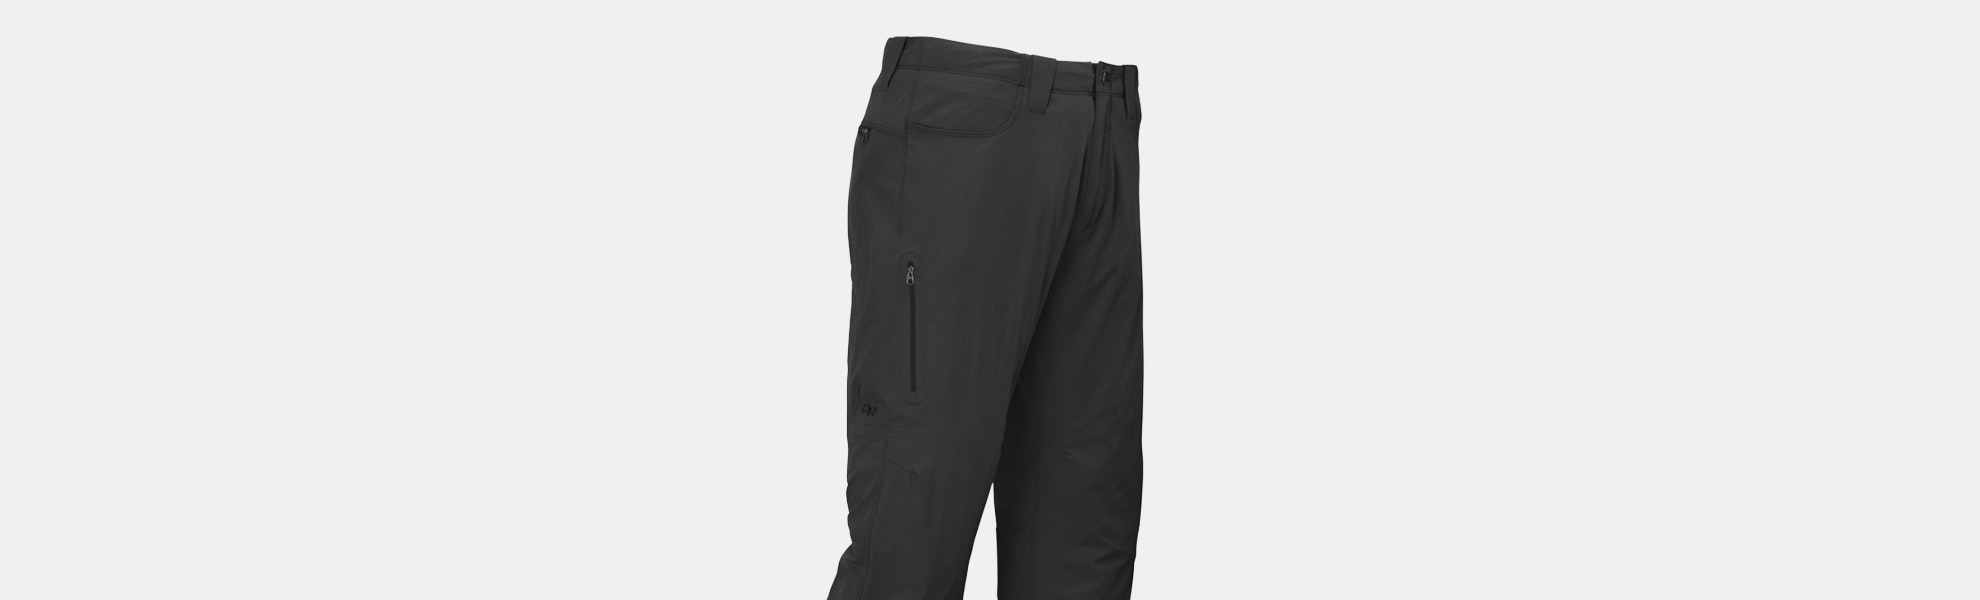 Outdoor Research Men's Ferrosi / Convertable Pants